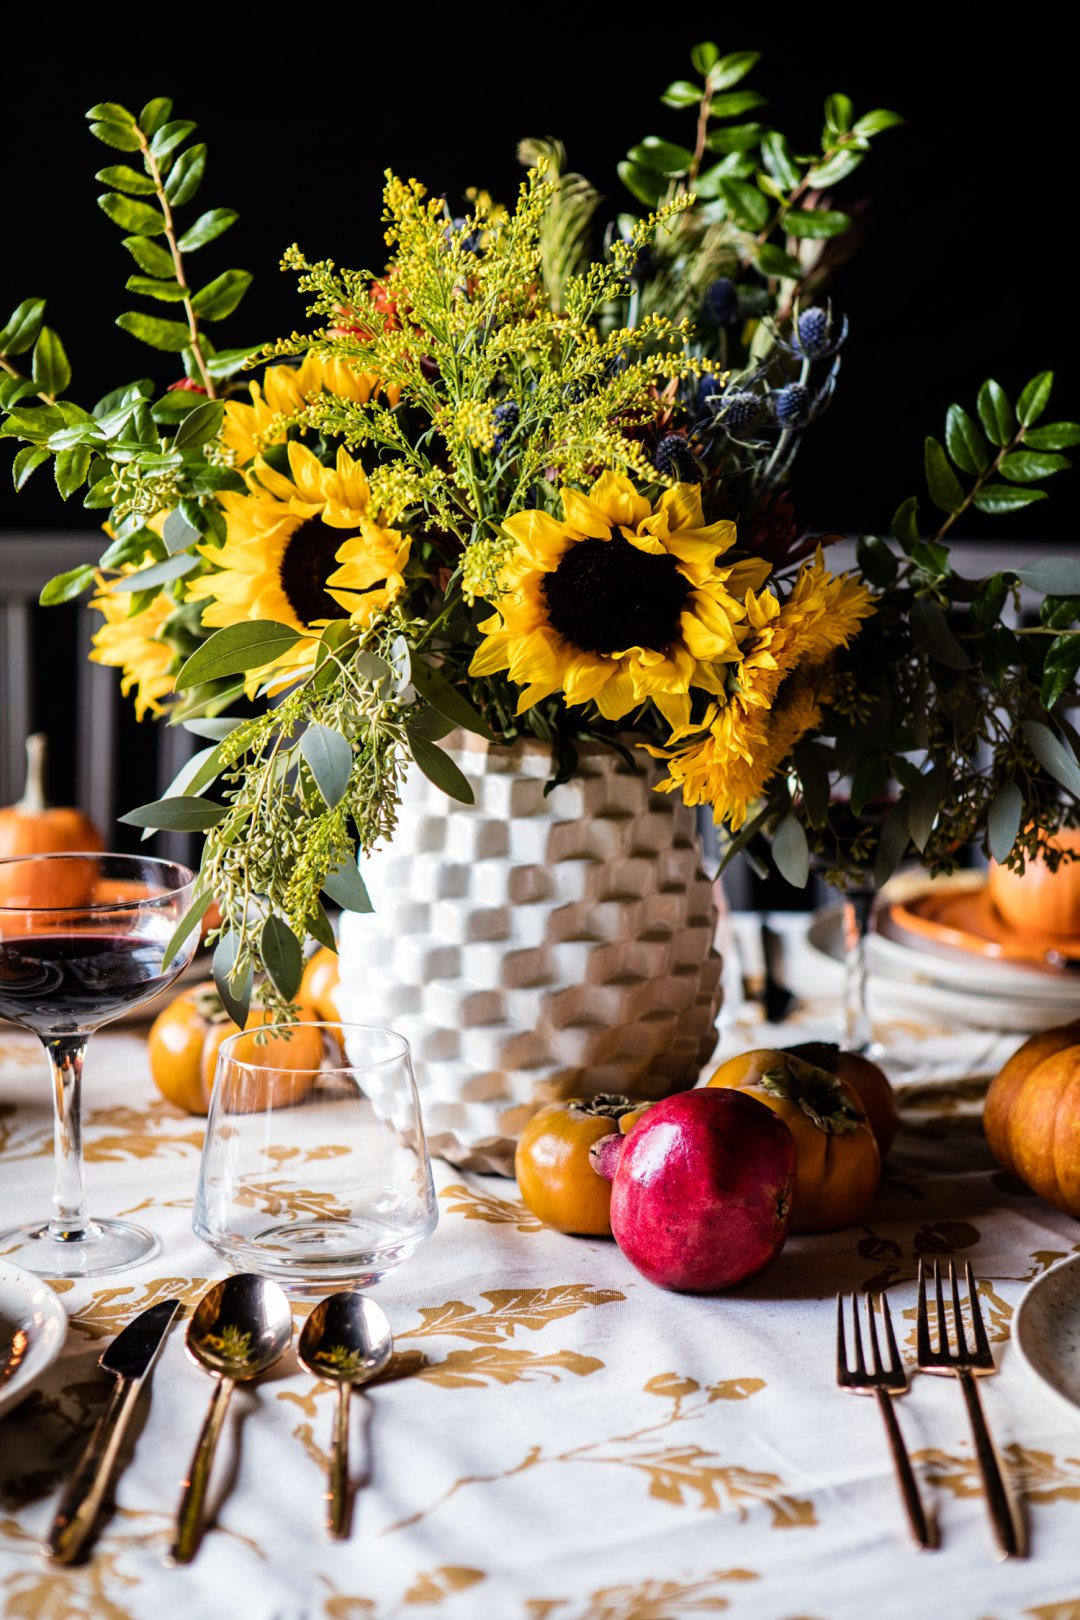 Centerpiece bouquet of green botanicals and sunflowers in a textured white vase